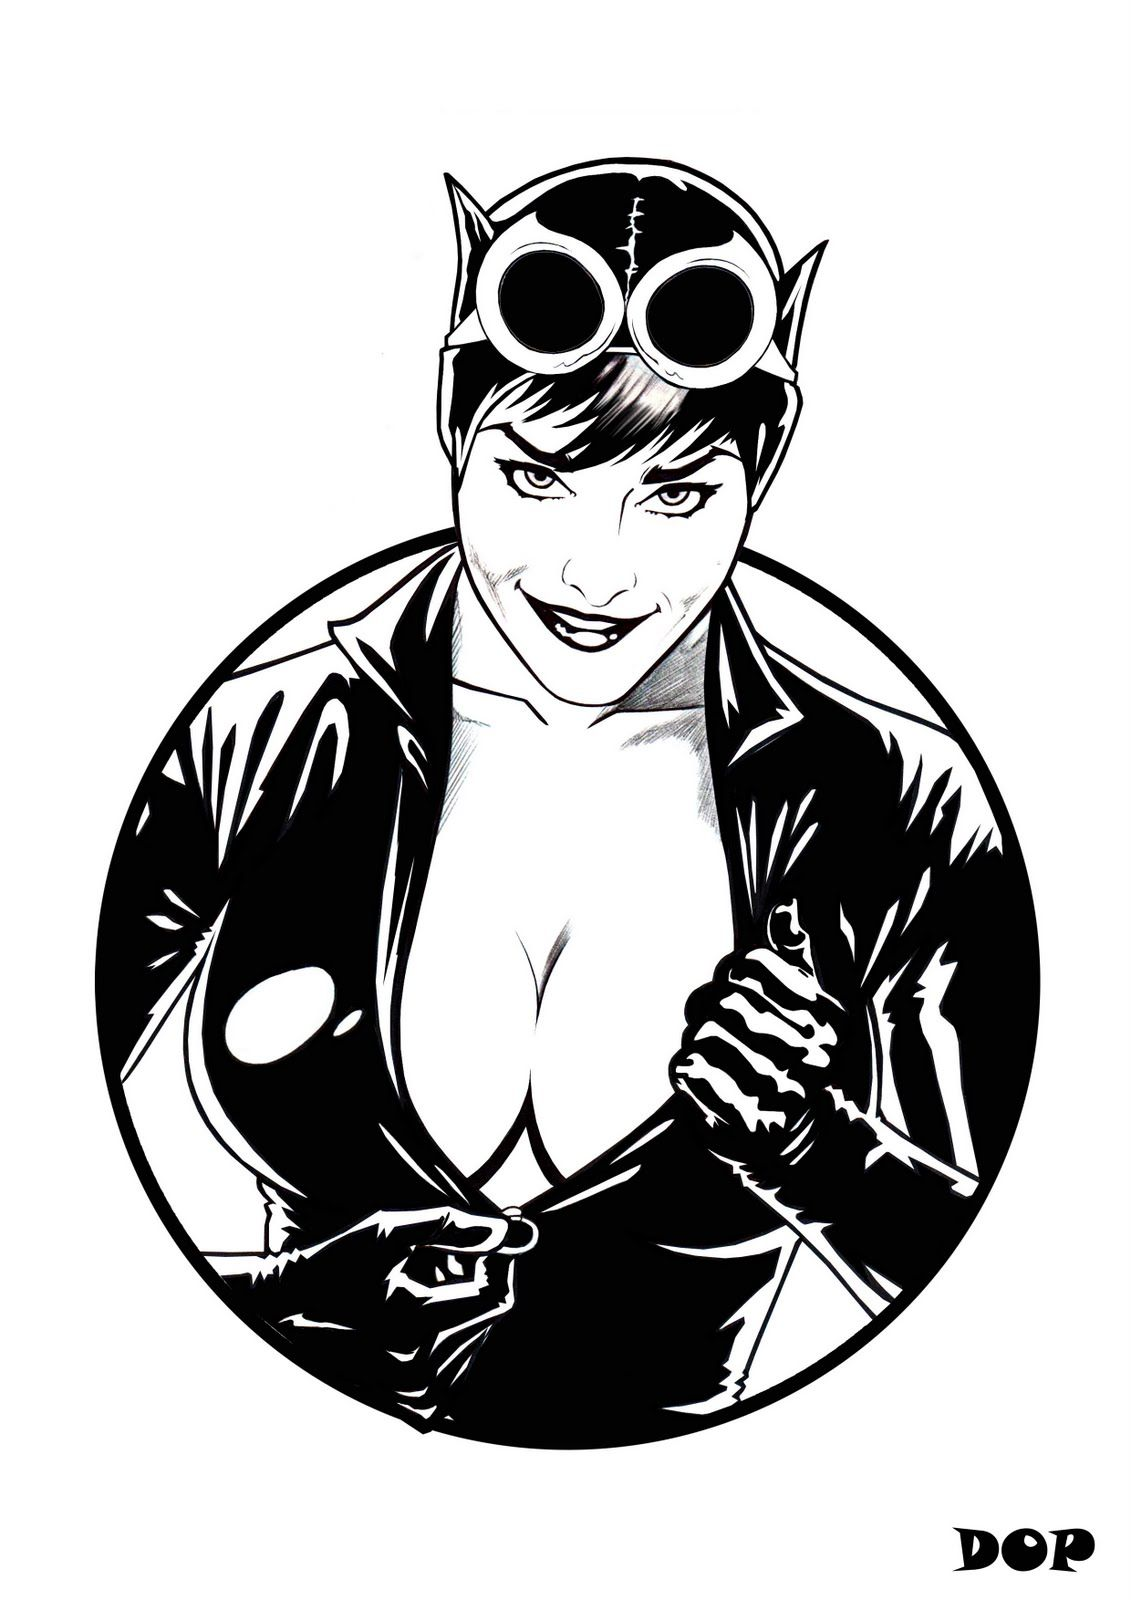 catwoman | dibujos | Pinterest | Catwoman